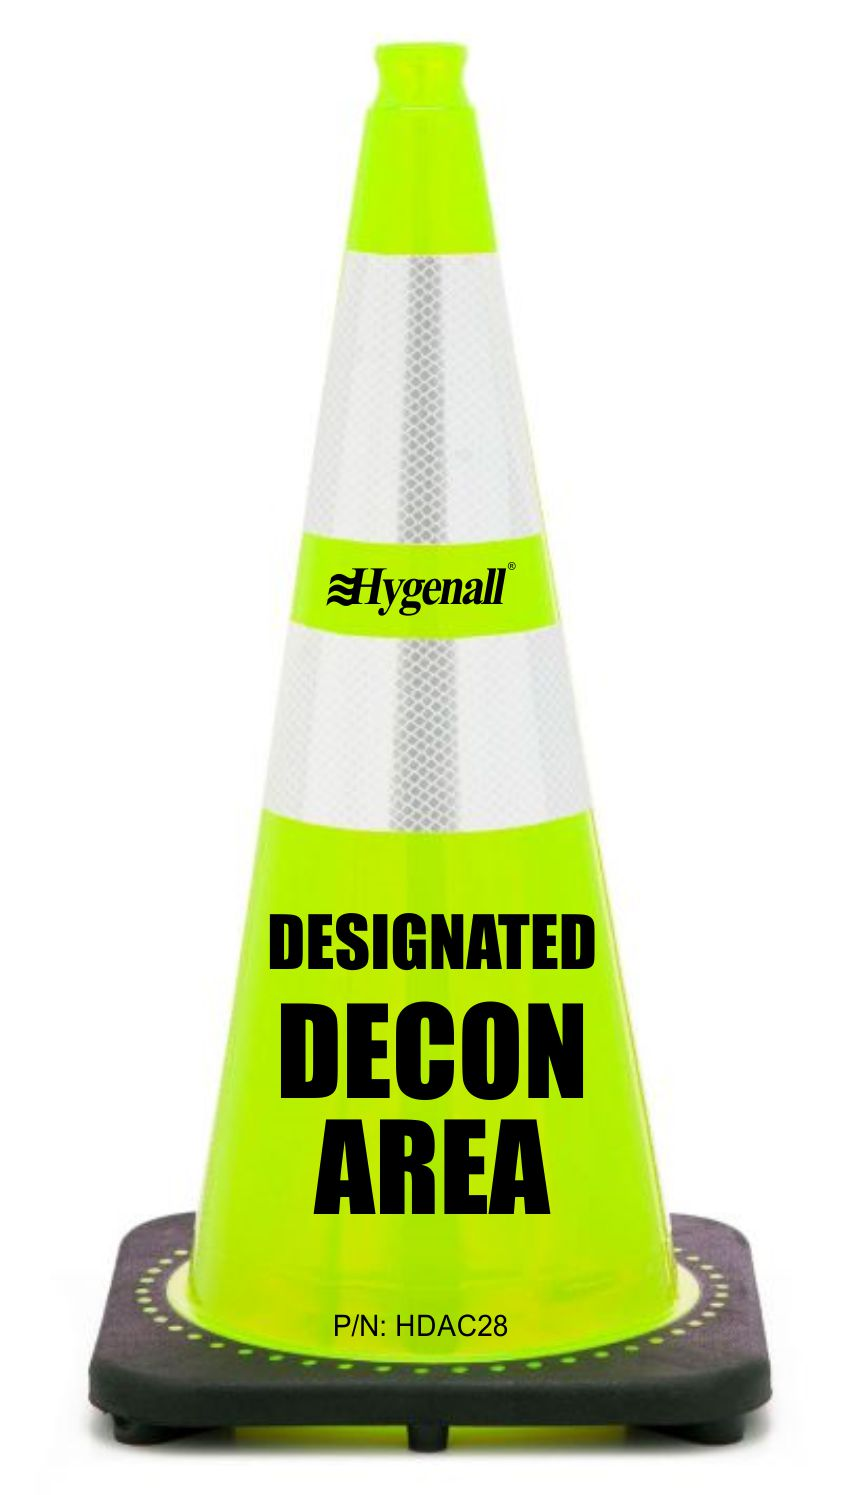 DECONTAMINATION AREA CONE